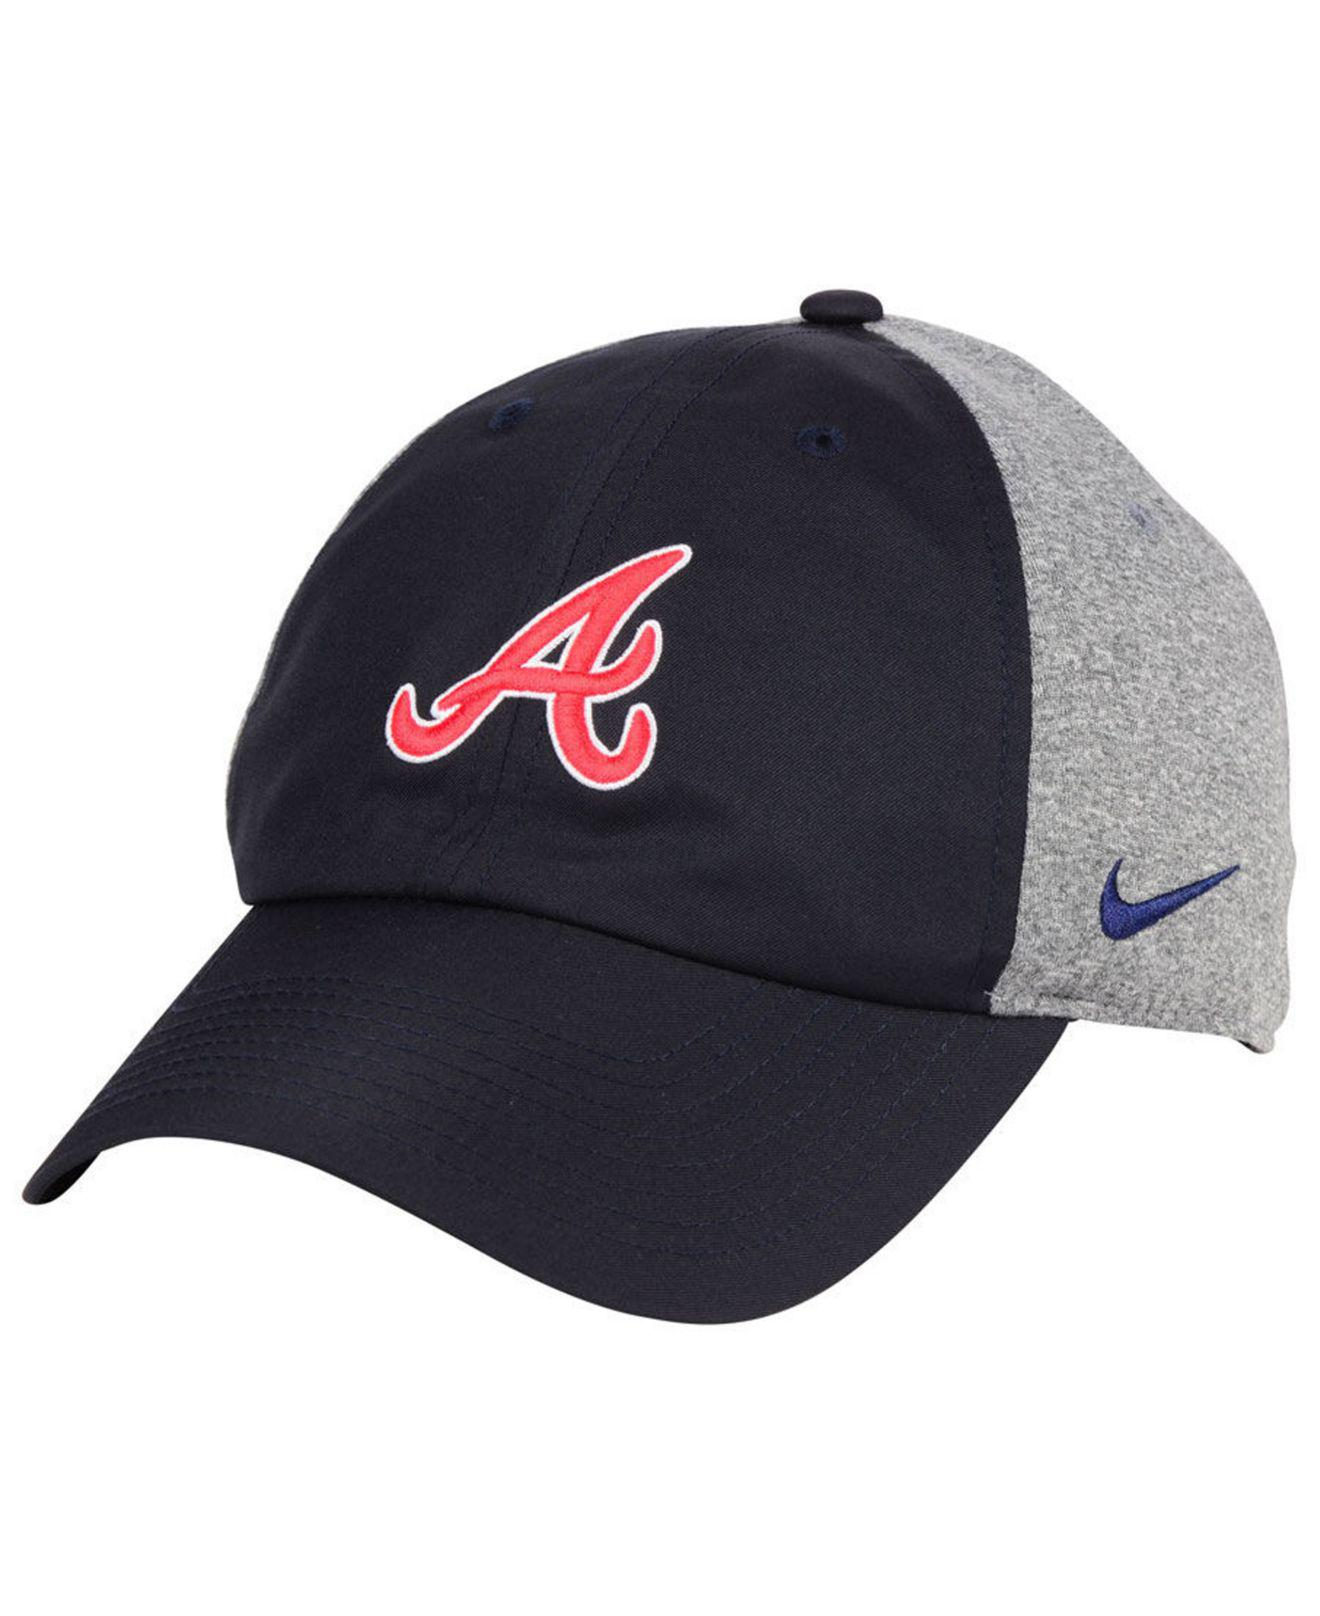 new product 63a9e f6356 ... official lyst nike atlanta braves new day legend cap in blue for men  1255e 76a99